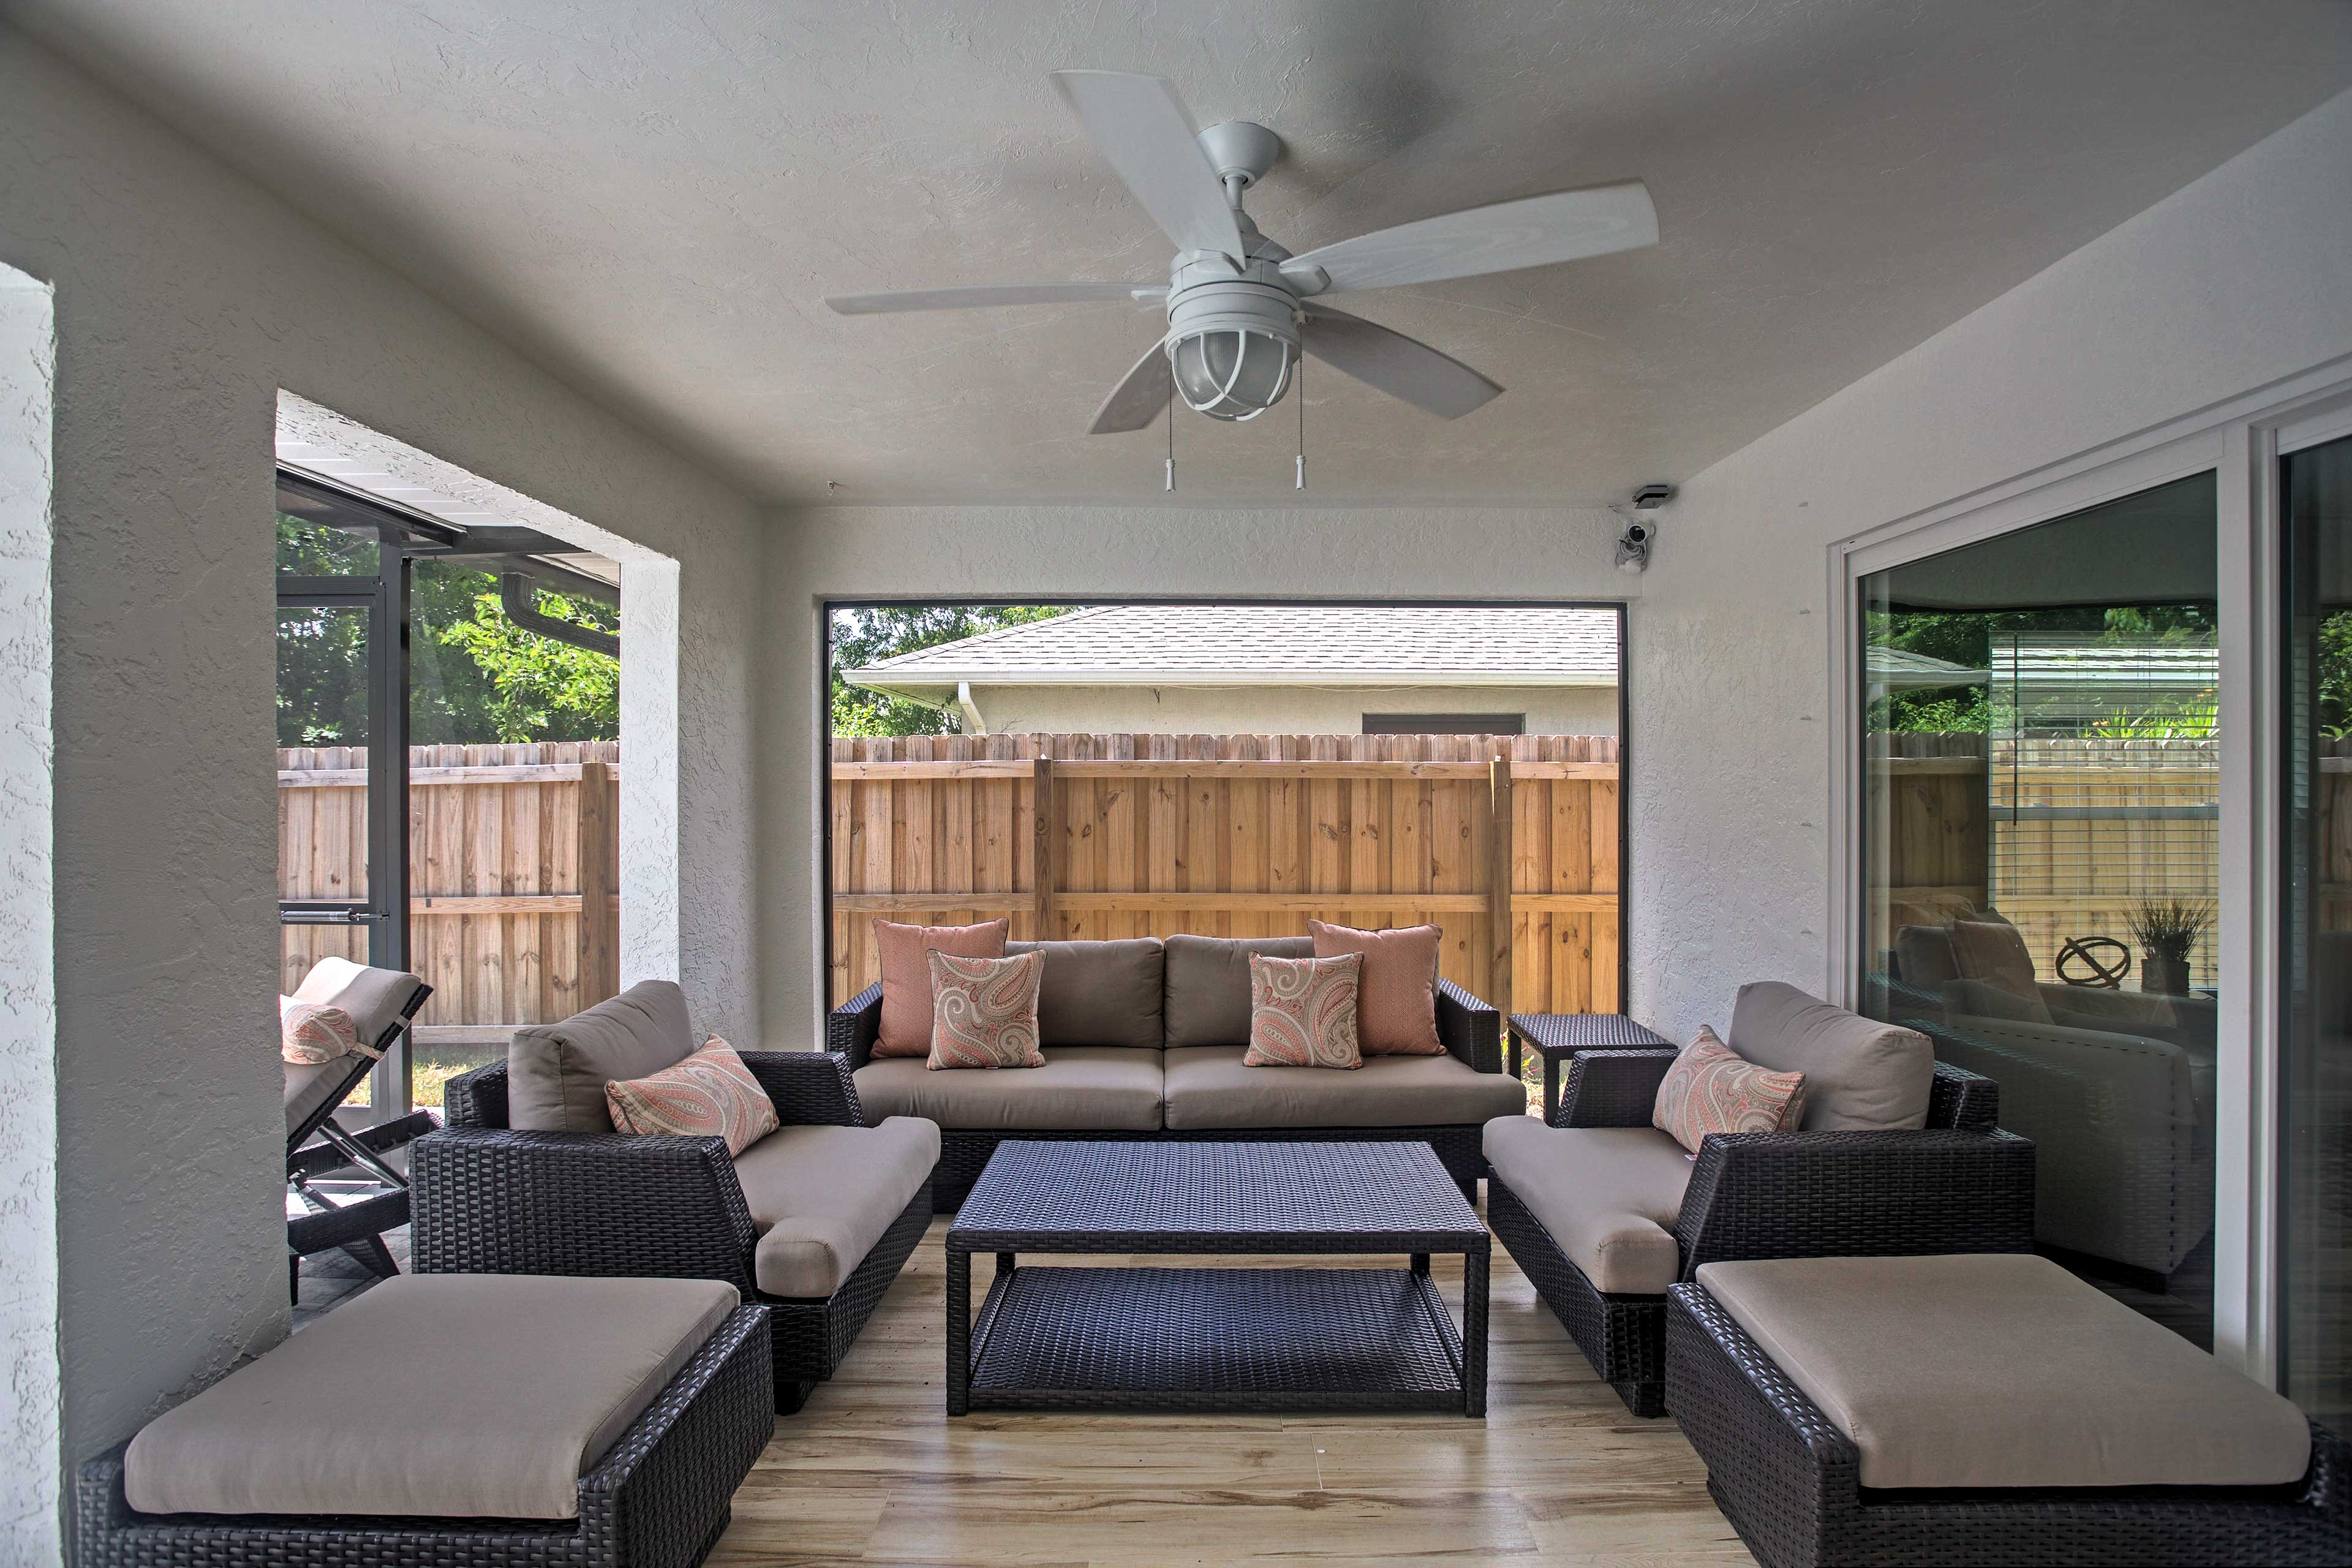 Spend afternoons lounging in the screened porch, which boasts large lanai doors.